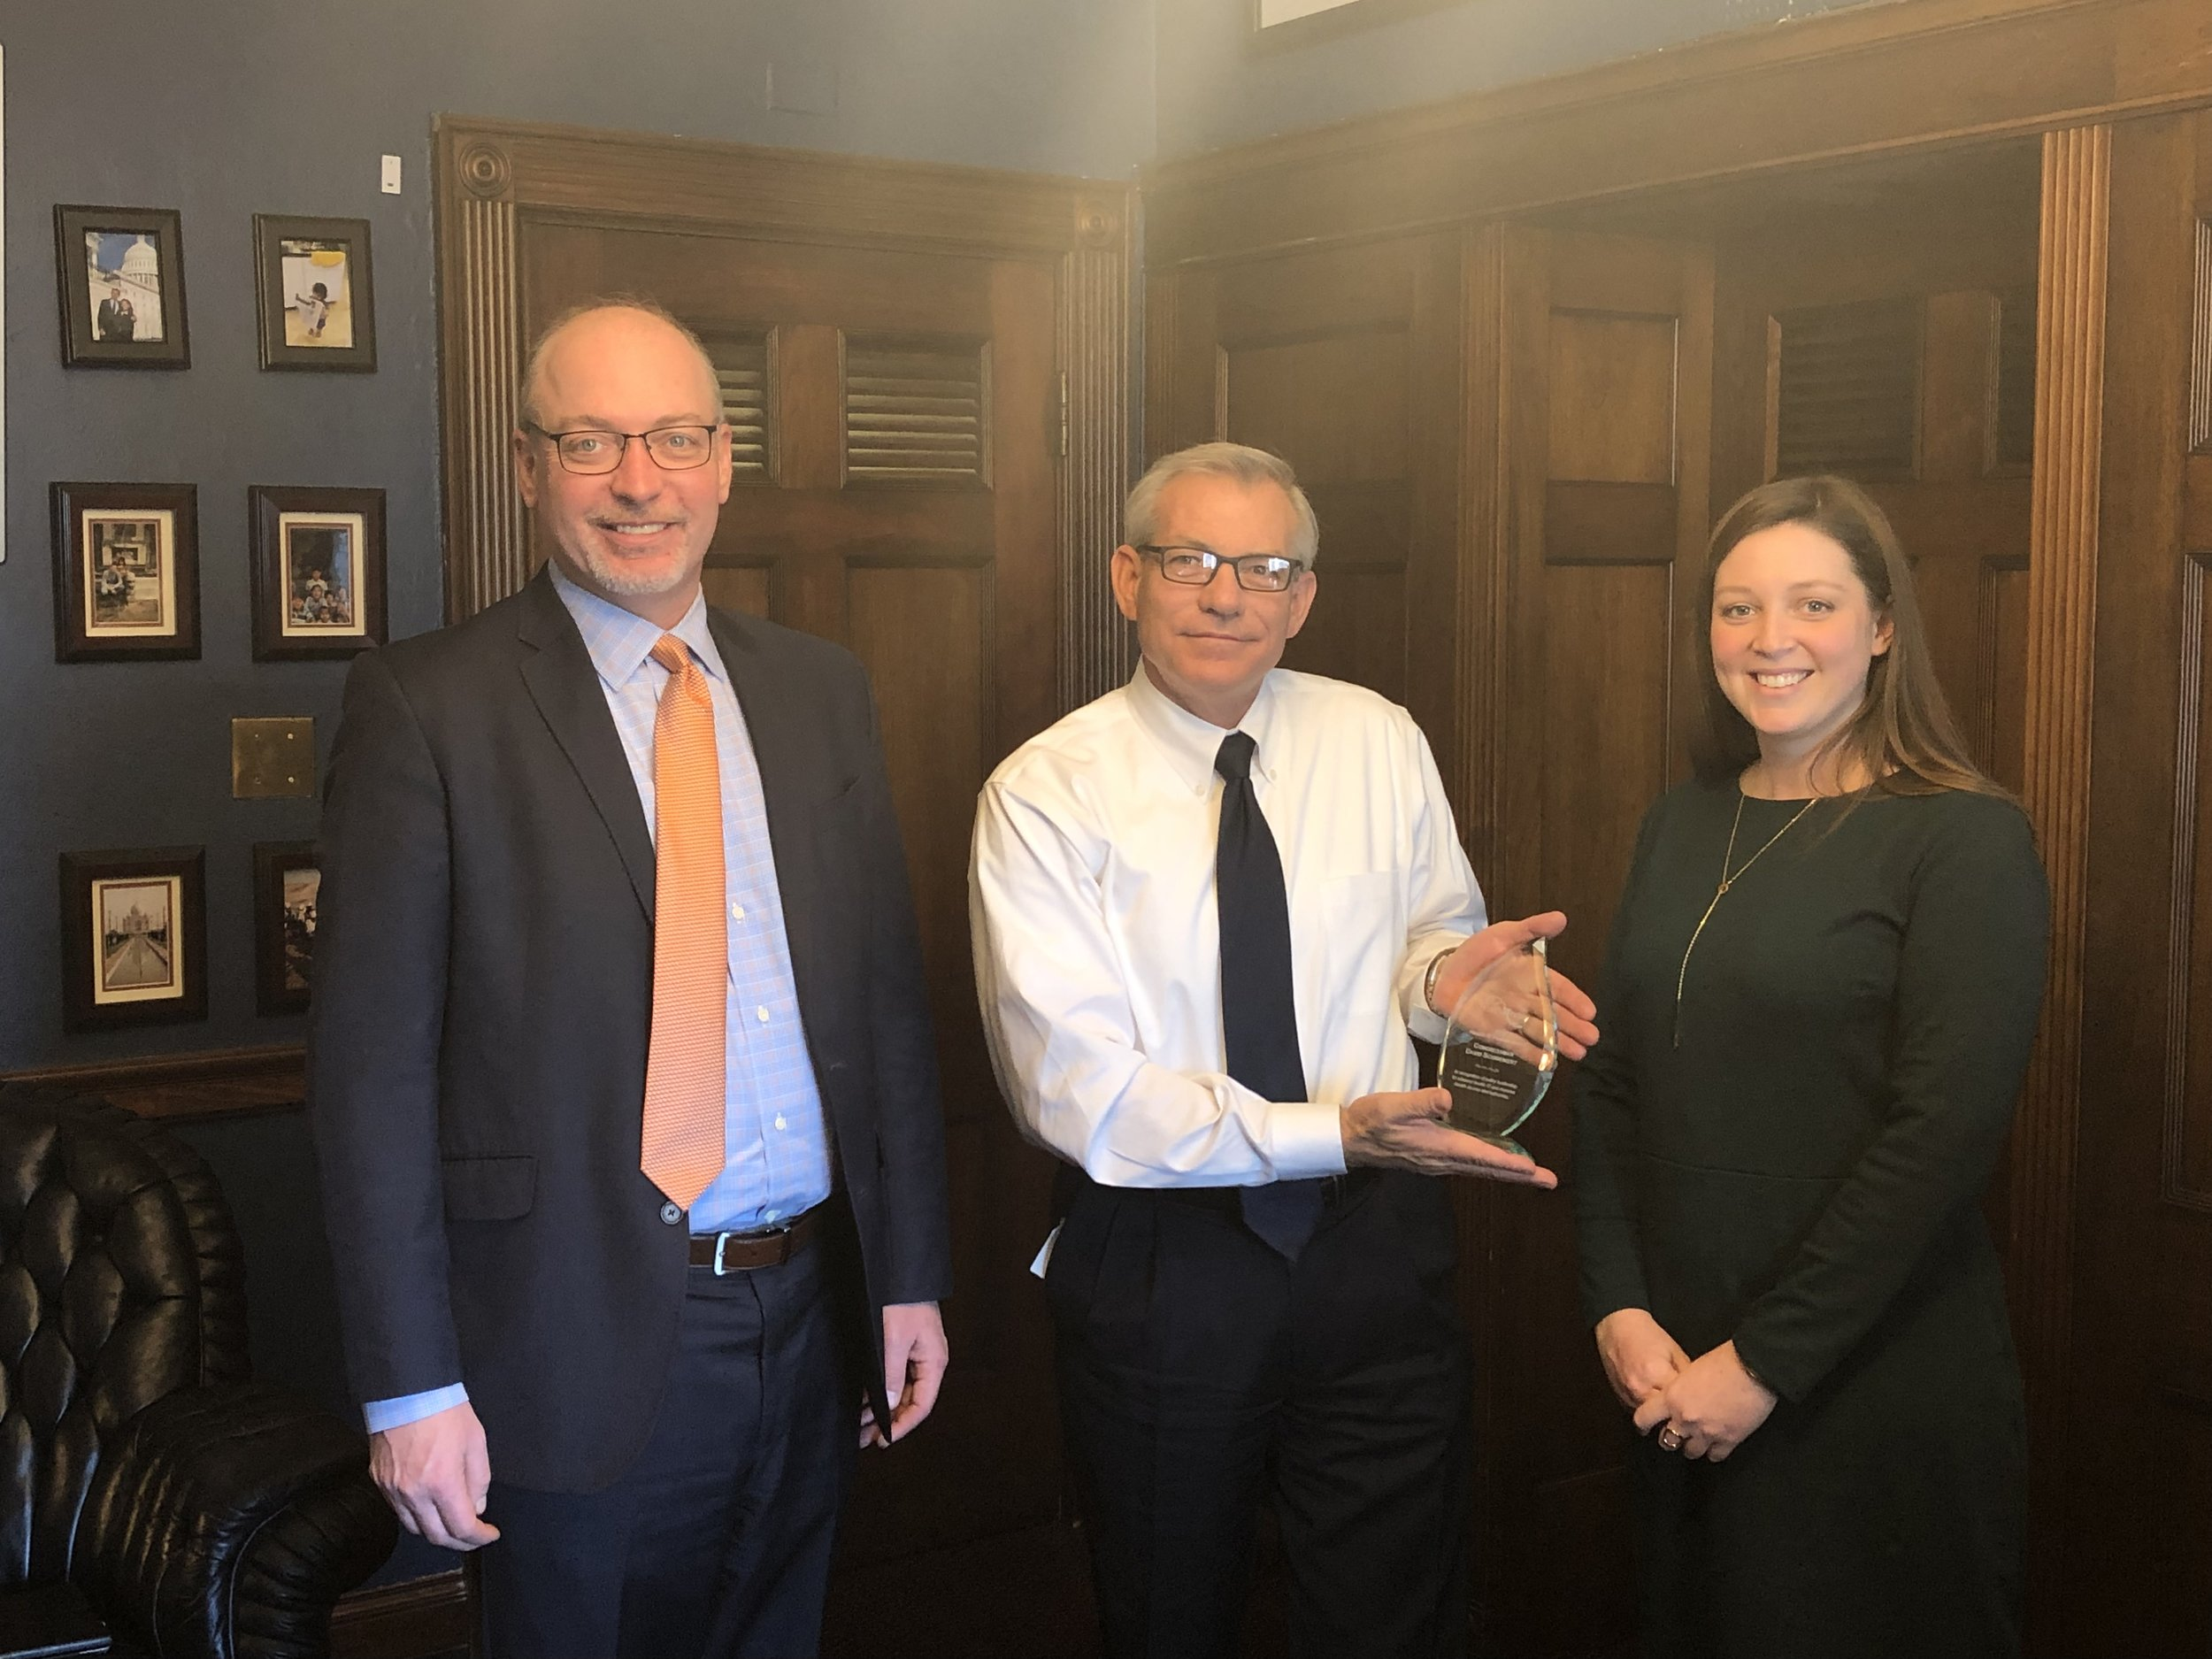 Rep. David Schweikert (R-AZ) accepts the Health IT Pioneer award from Health IT Now Executive Director Joel White (left) and Senior Director of Government Affairs Catherine Pugh (right).